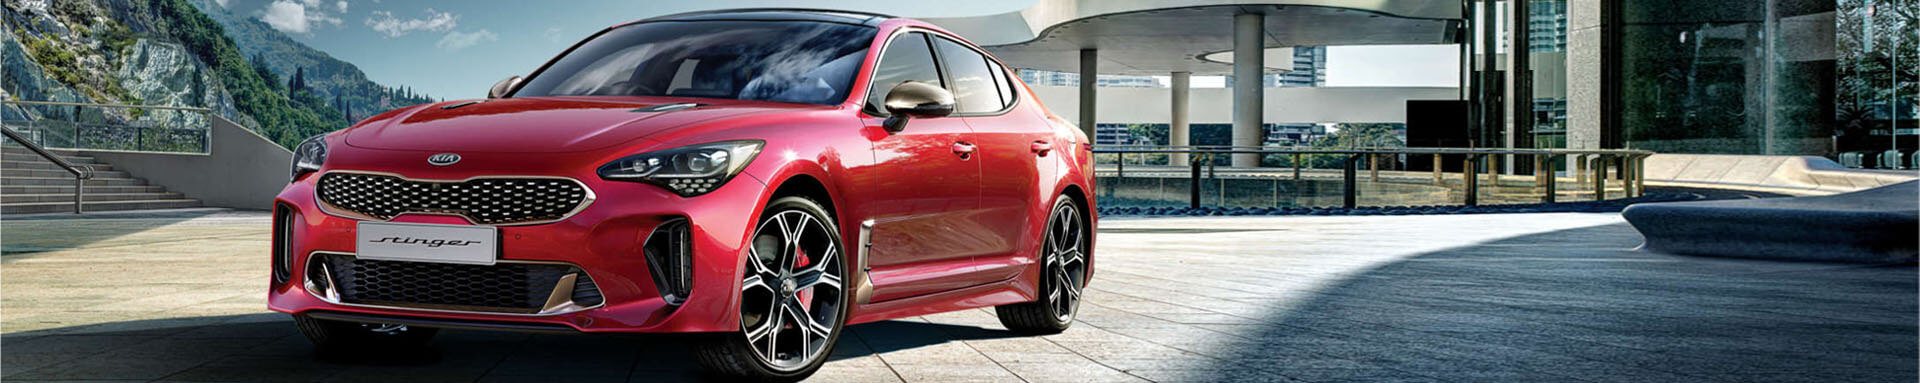 Suttons City Kia Stinger